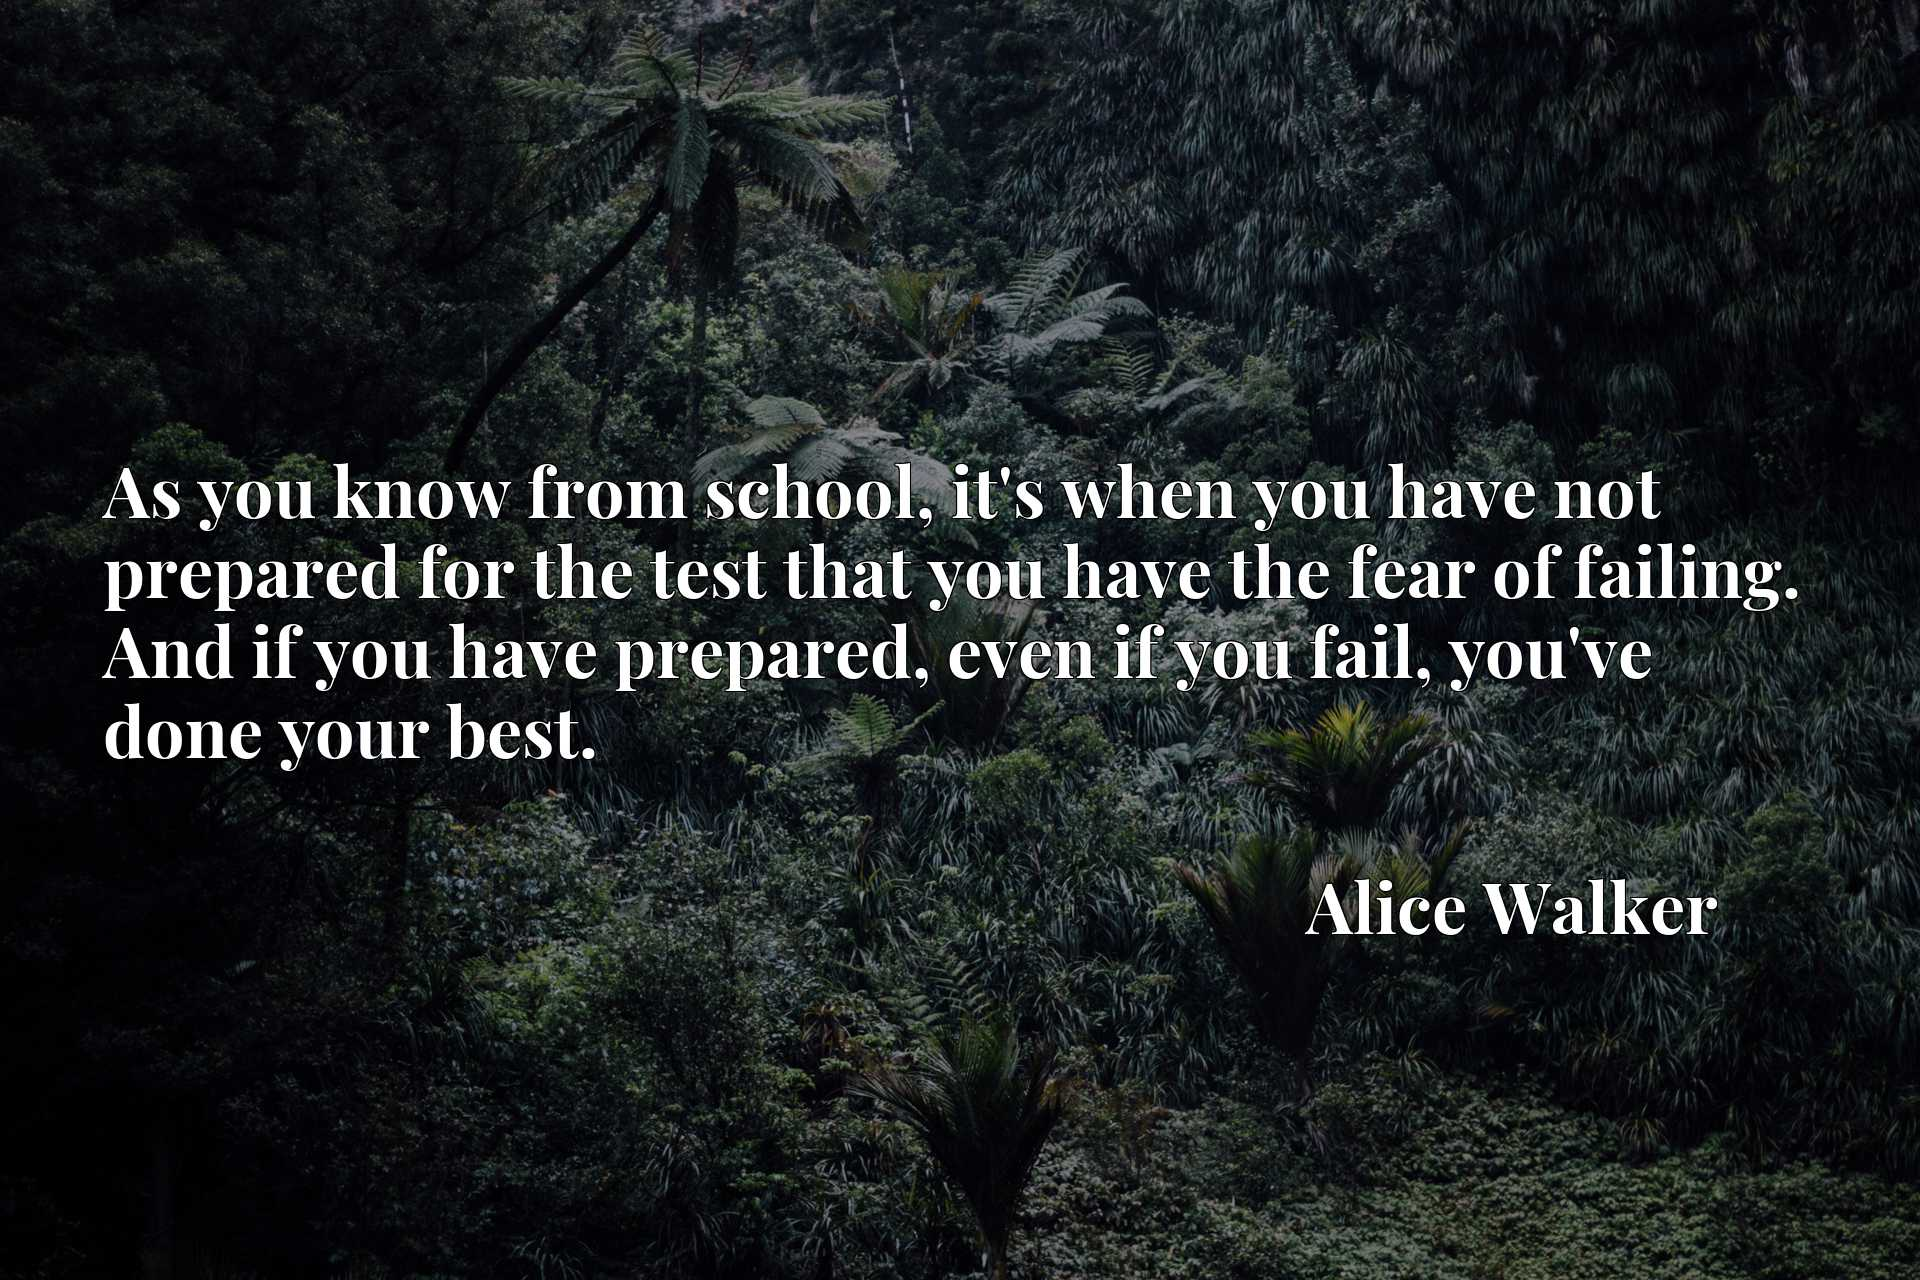 As you know from school, it's when you have not prepared for the test that you have the fear of failing. And if you have prepared, even if you fail, you've done your best.